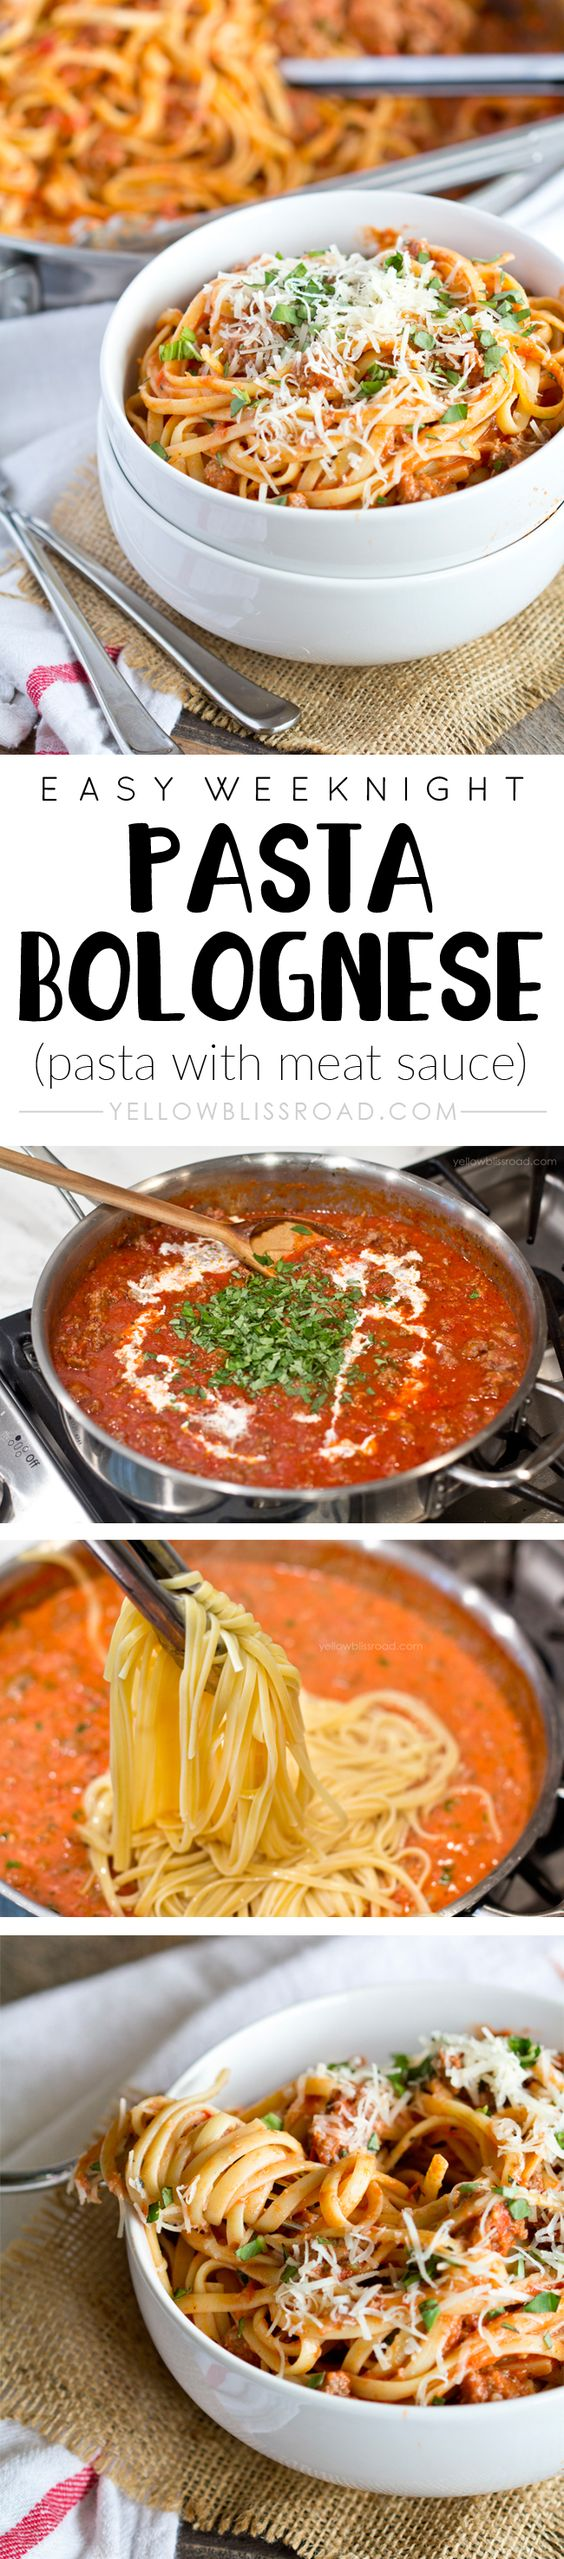 Easy Weeknight Spaghetti with Meat Sauce | Recipe | Pasta, Sauces and ...